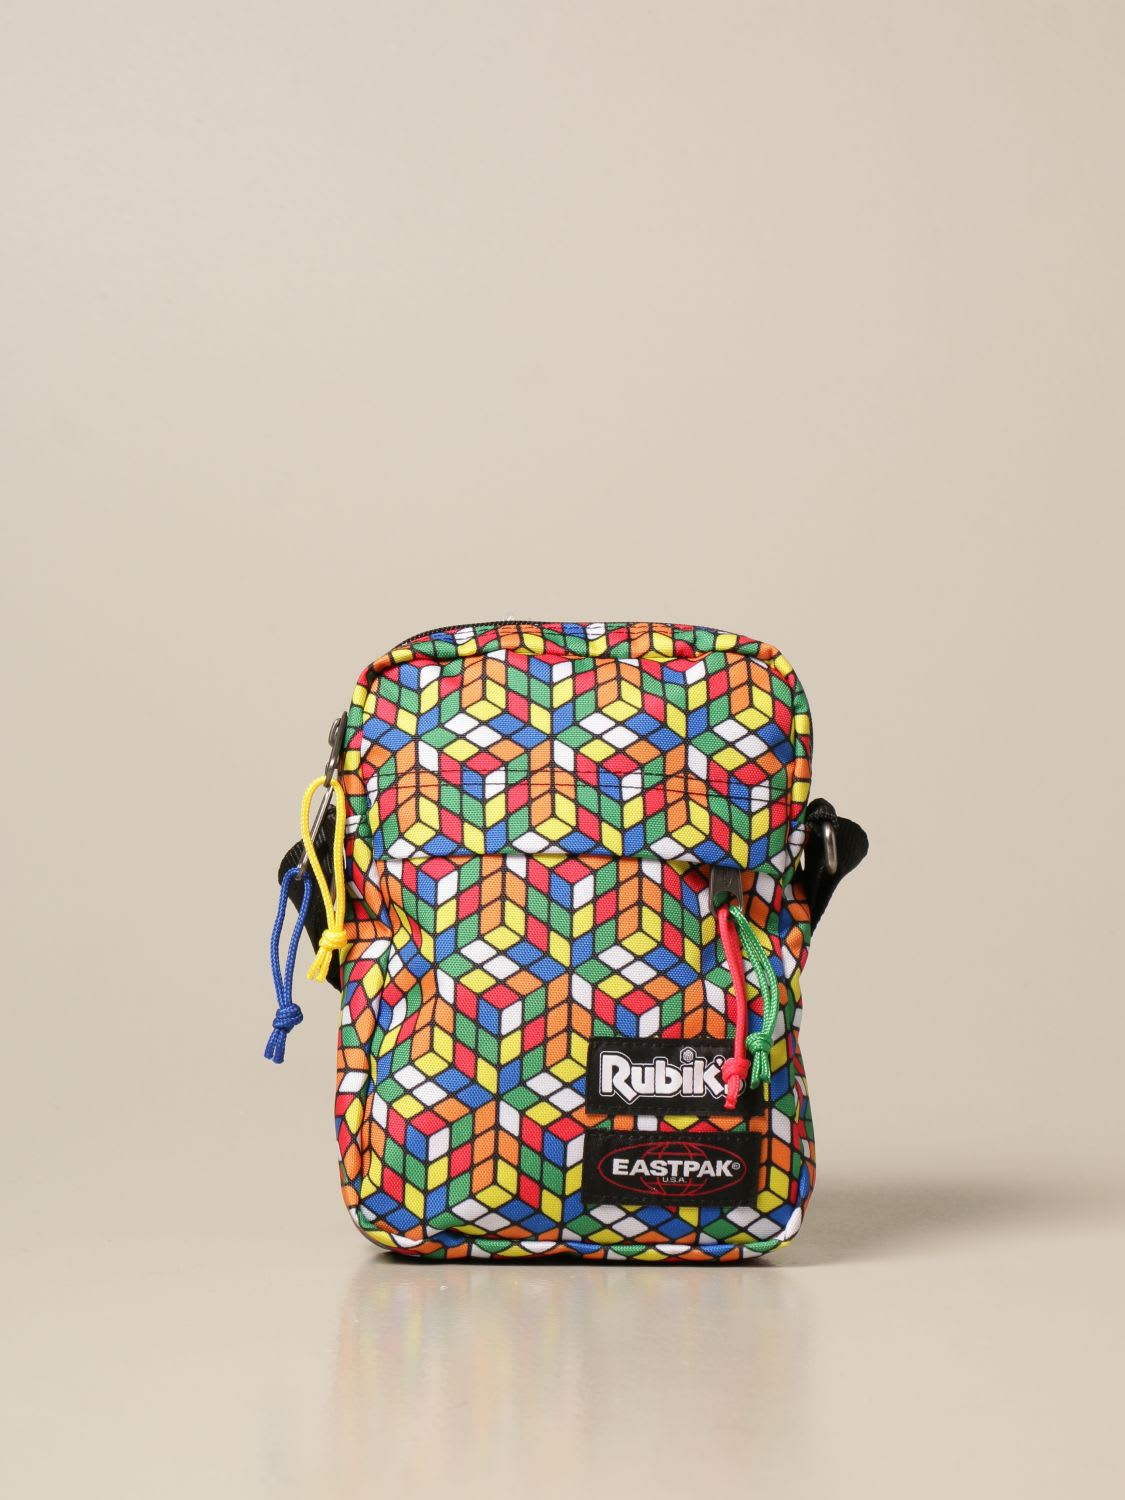 Eastpak Backpack Runiks X Eastpak Canvas Bag